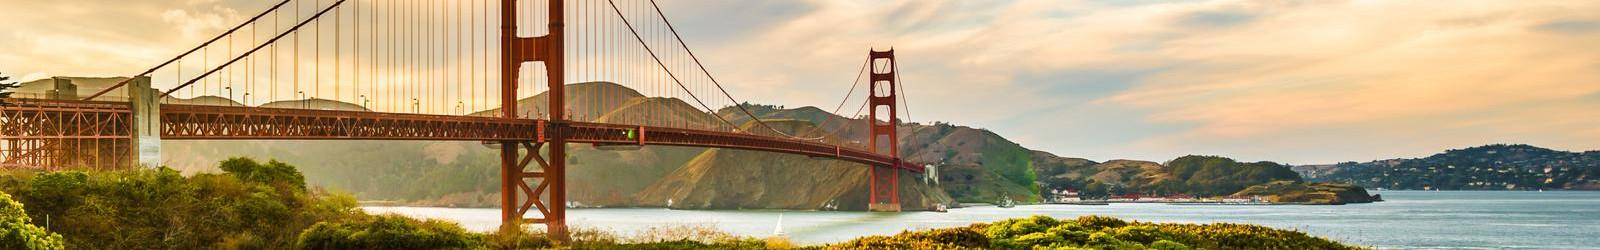 Therapists in San Francisco, California: psychologists, counselors, and mental health specialists